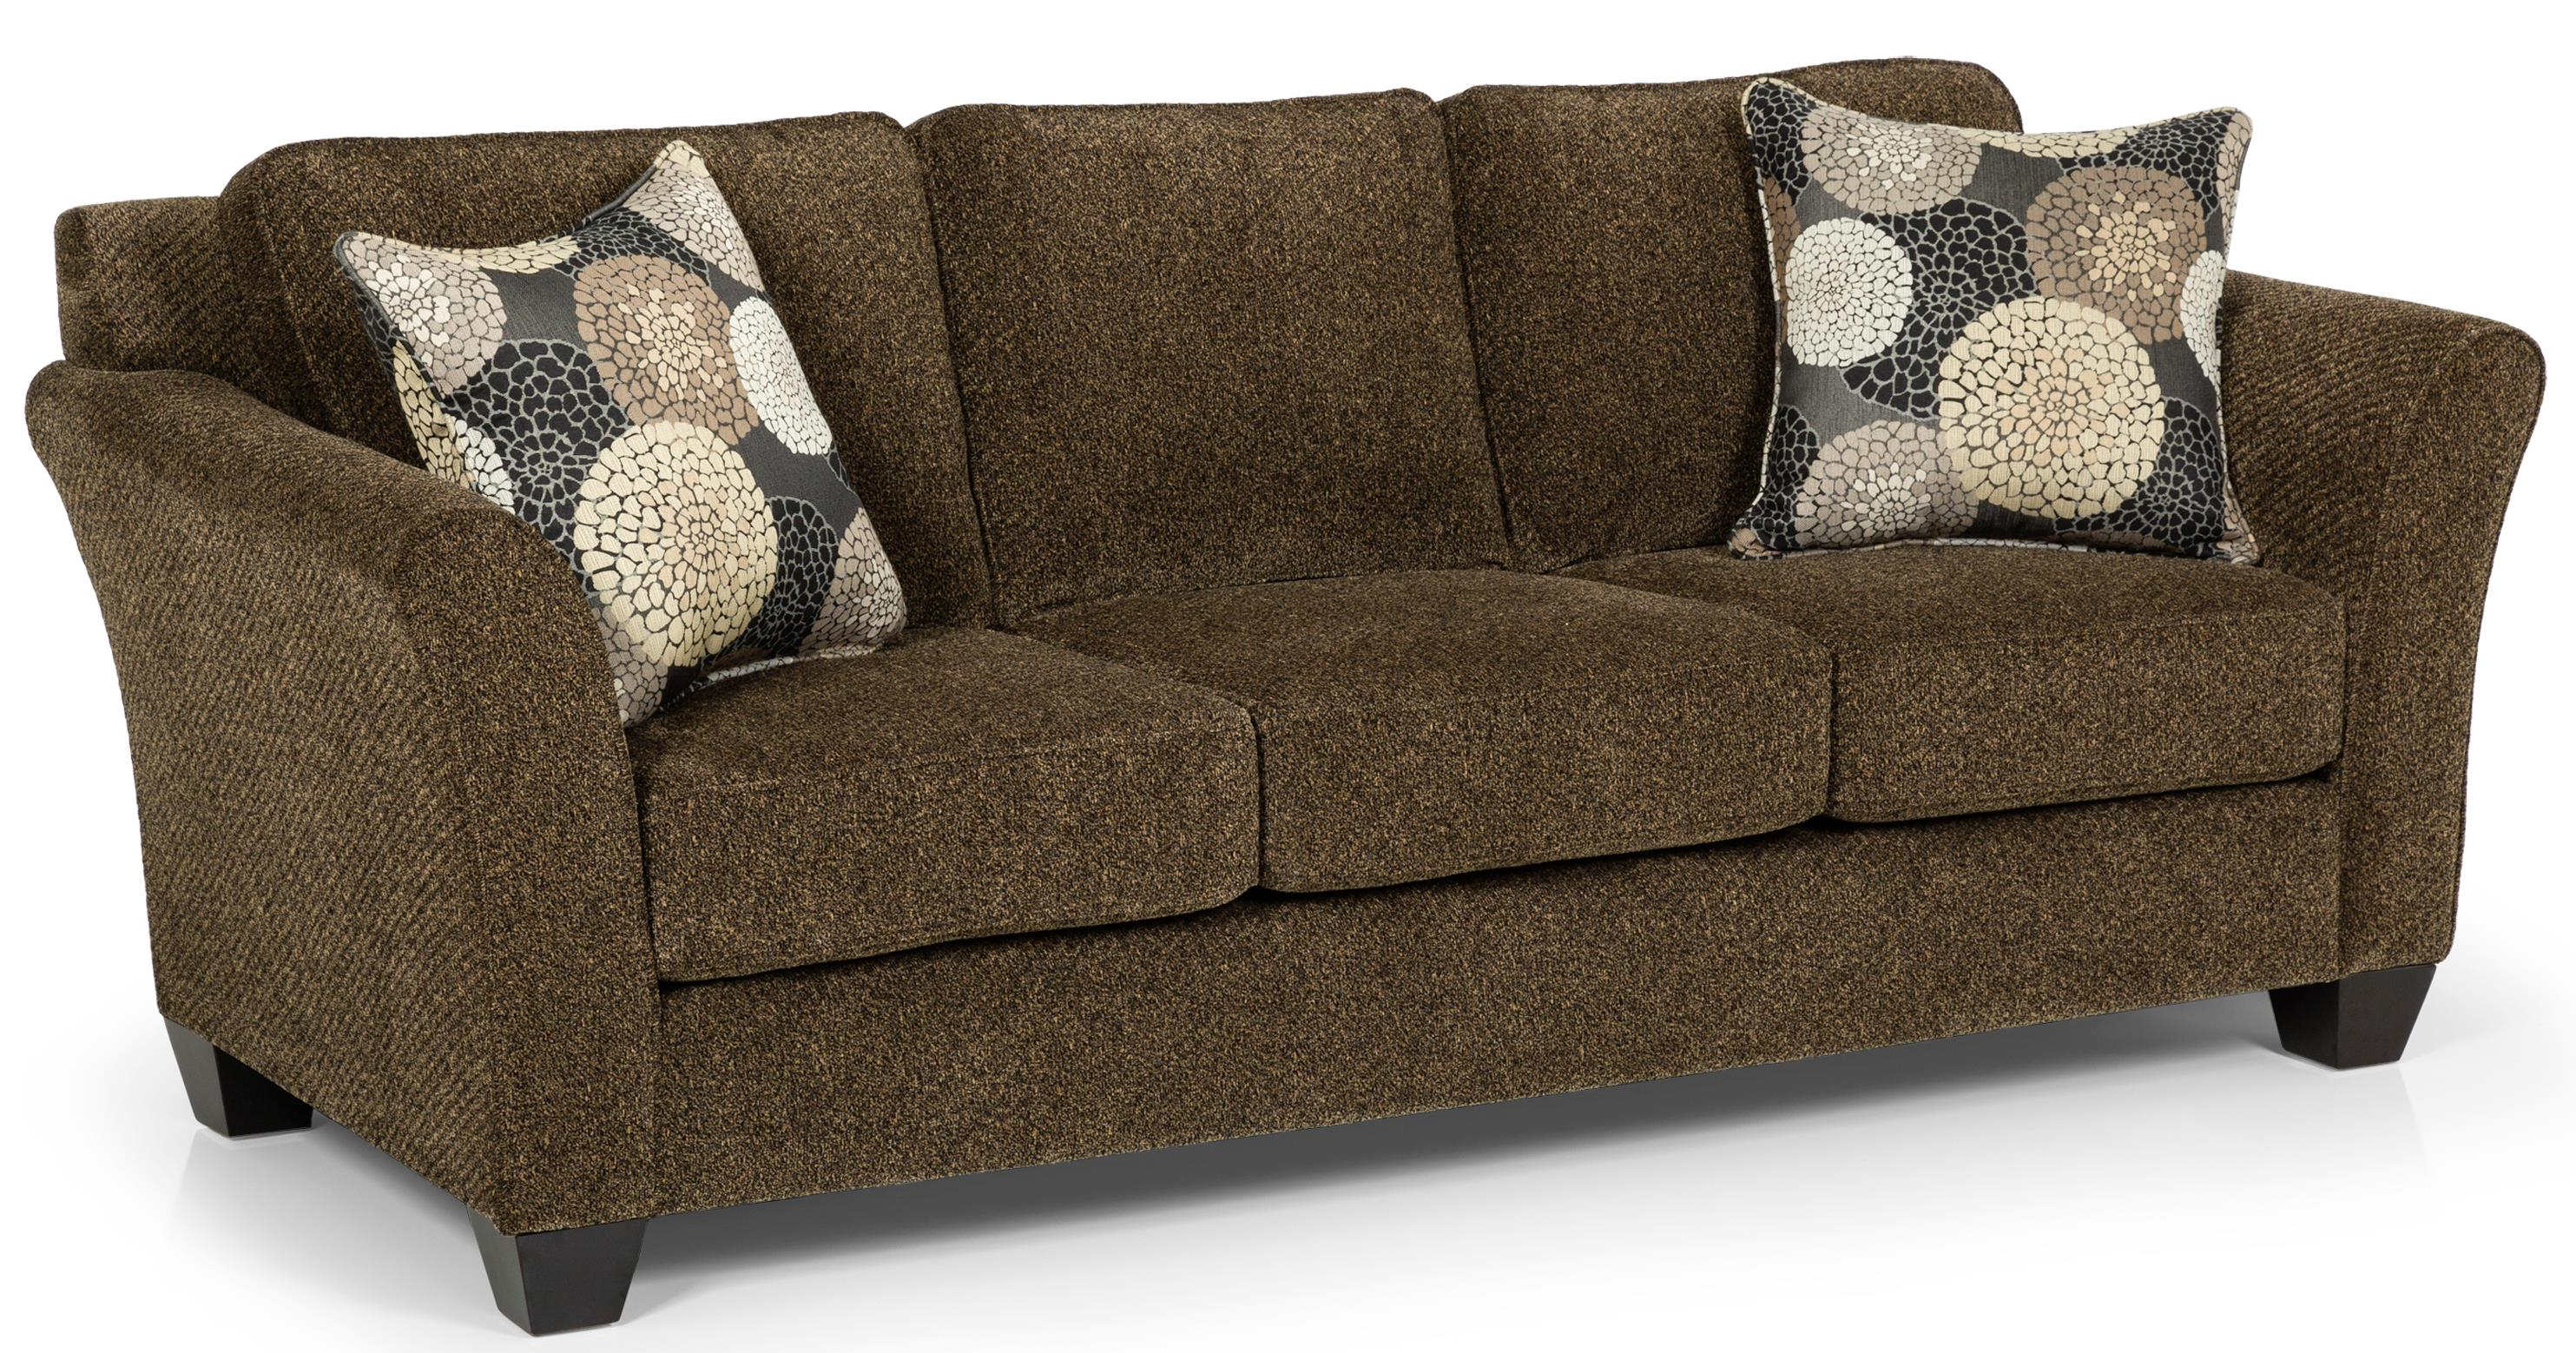 184 3 Over 3 Sofa by Stanton at Rife's Home Furniture